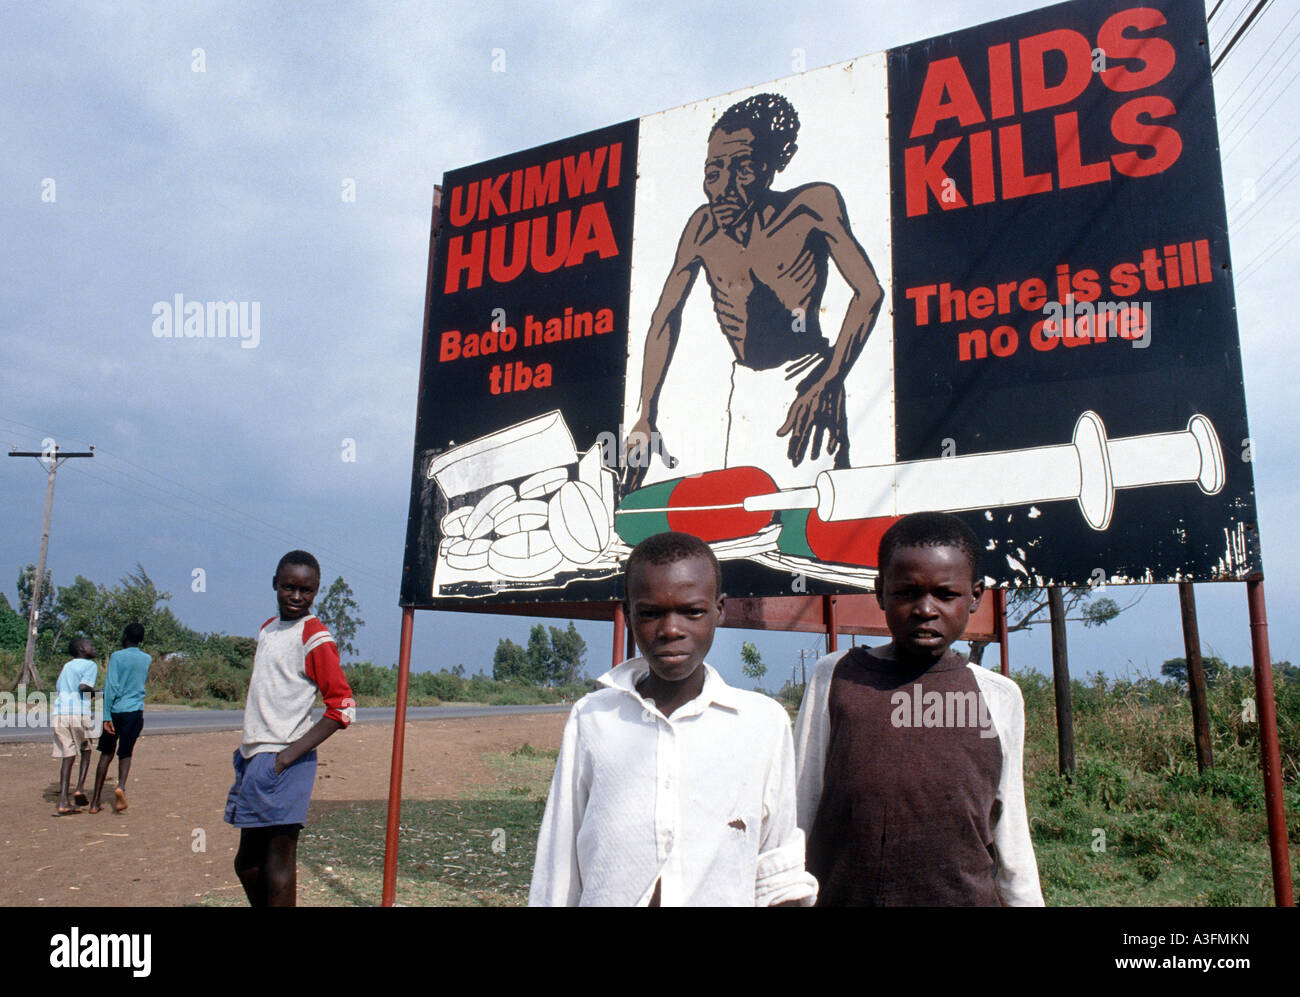 Hiv positive Dating kisumu